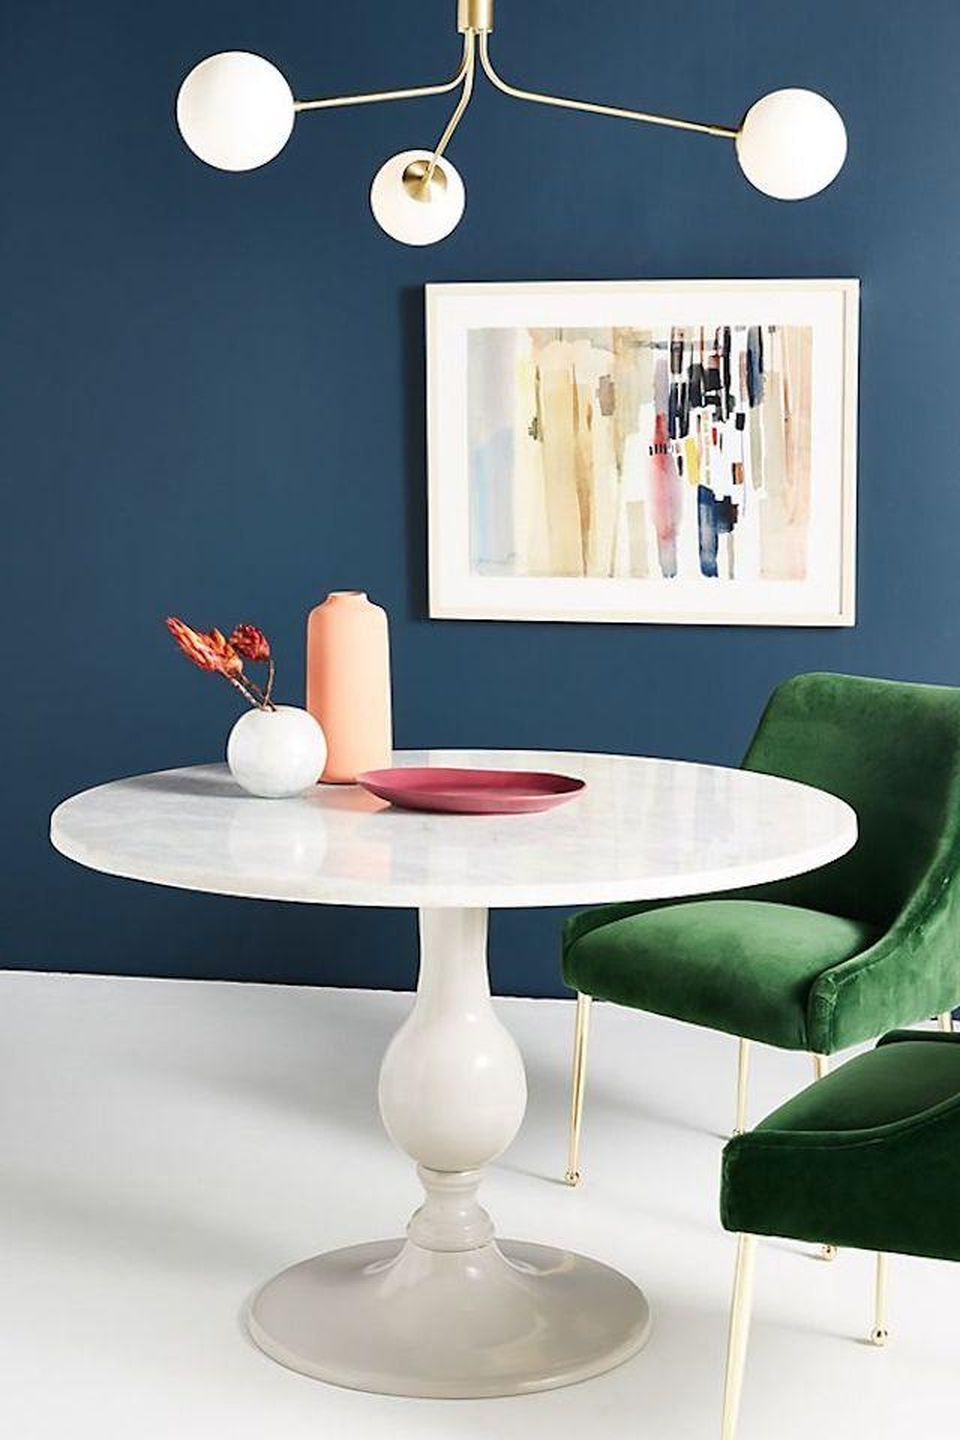 Best And Newest 7 Round Dining Room Tables Perfect For Small Spaces Within Solid Wood Circular Dining Tables White (View 17 of 25)